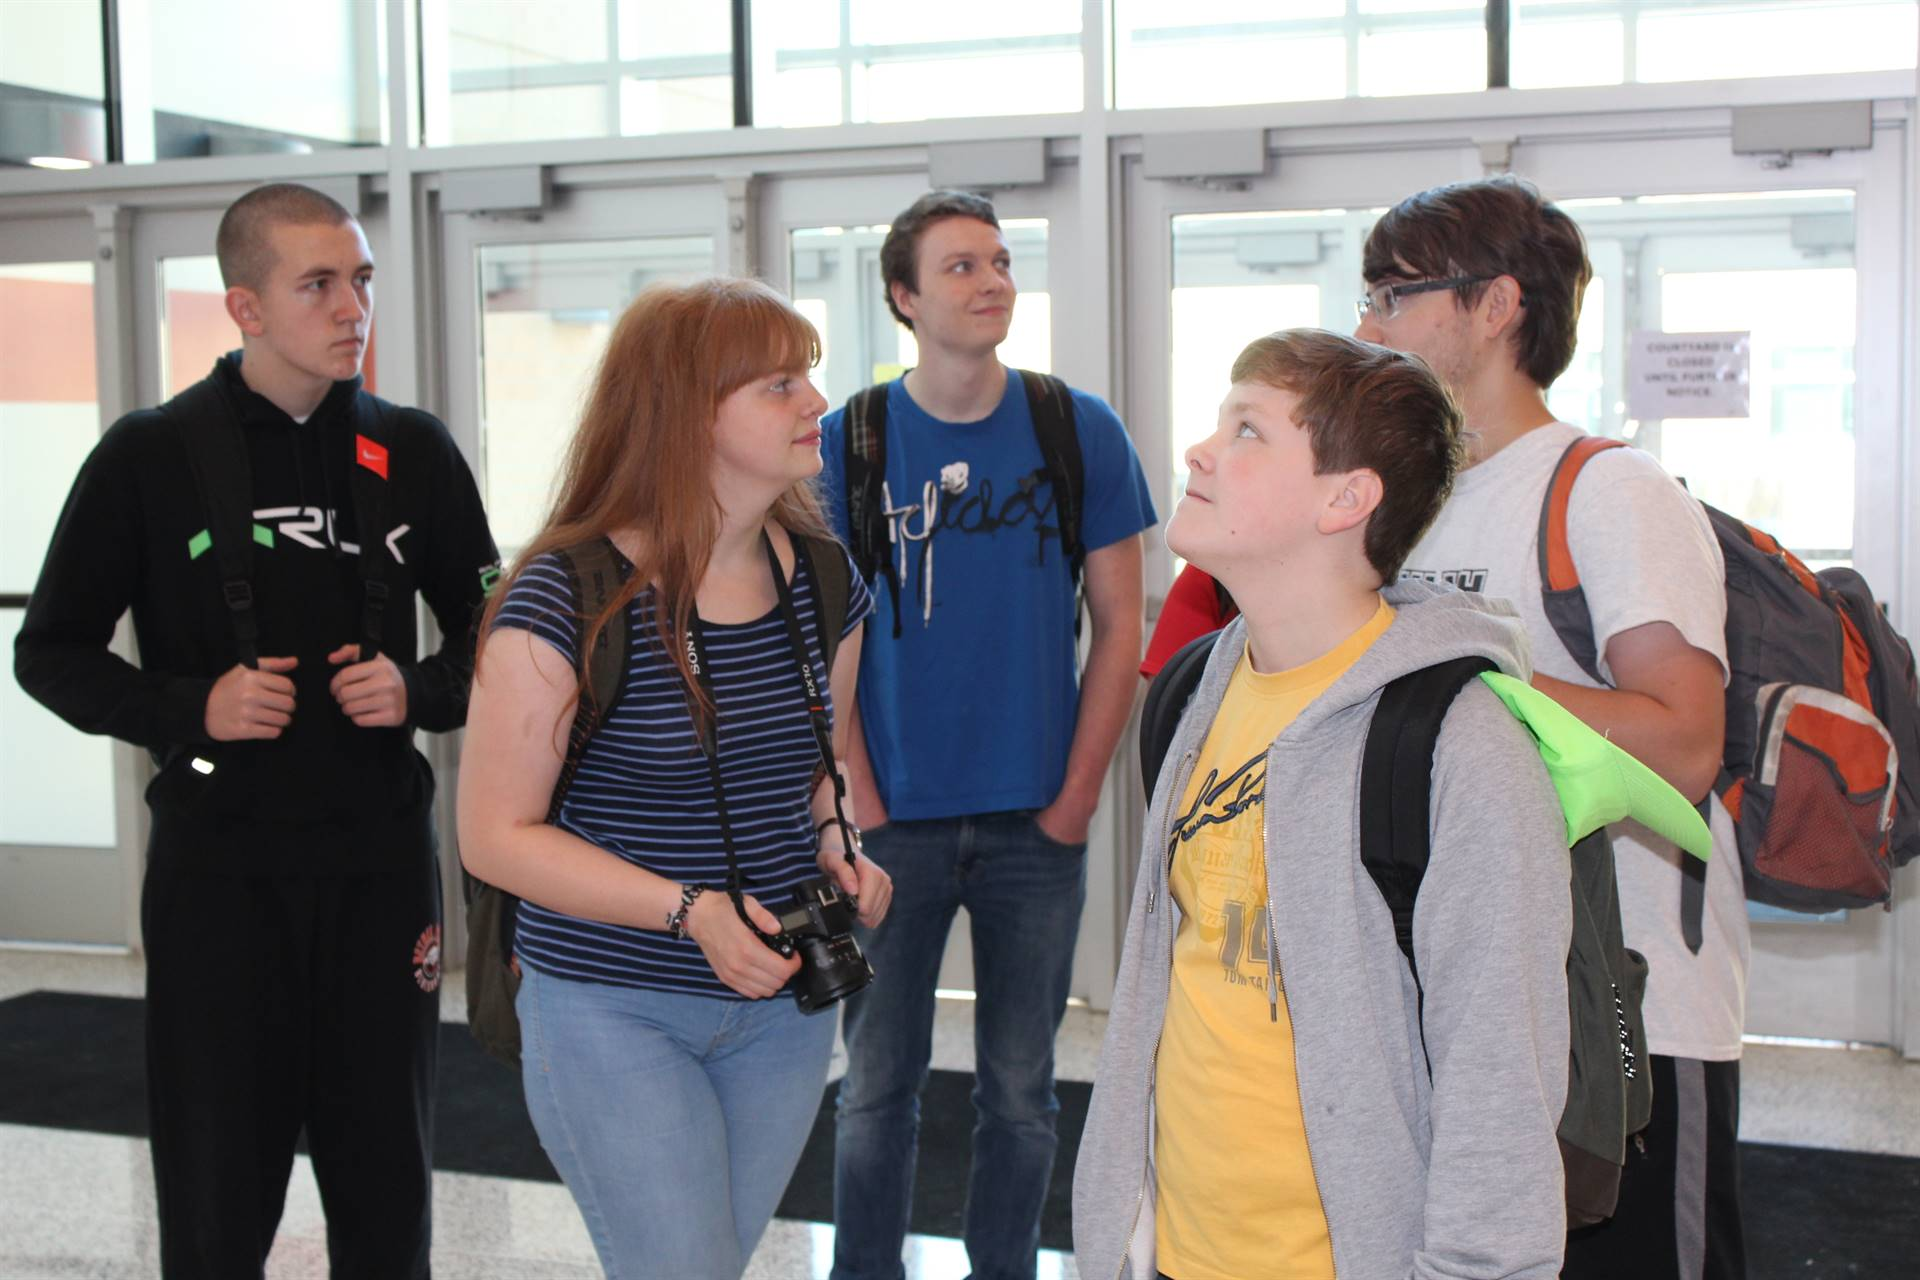 The German students were impressed with the size of BPHS